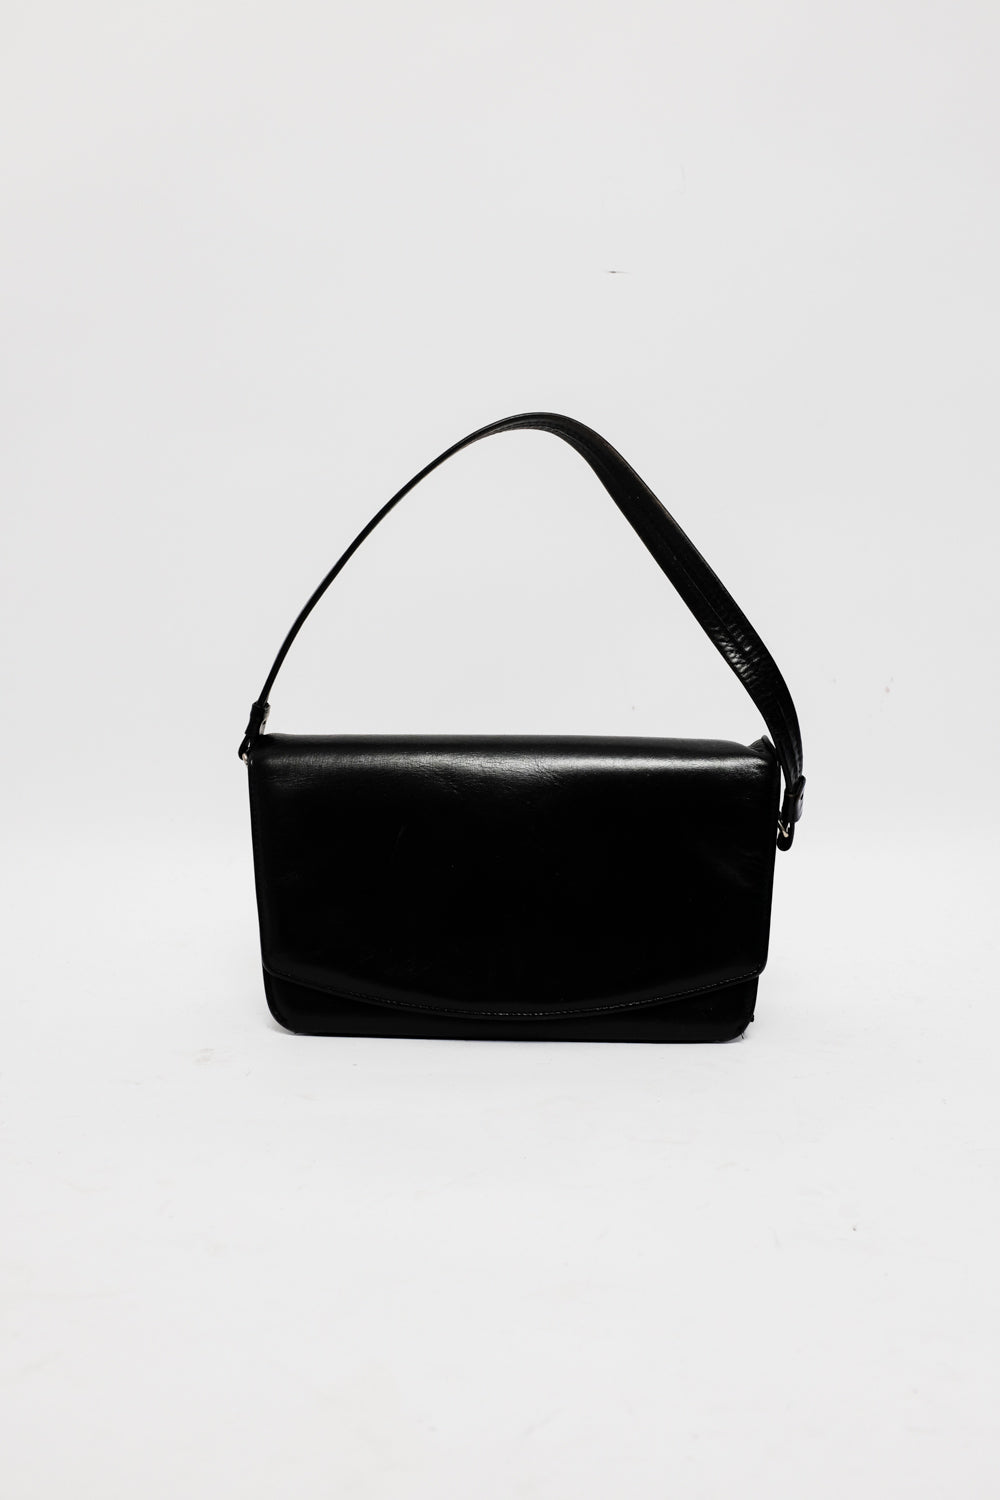 0021_SIMPLE UNDER ARM LEATHER BAG